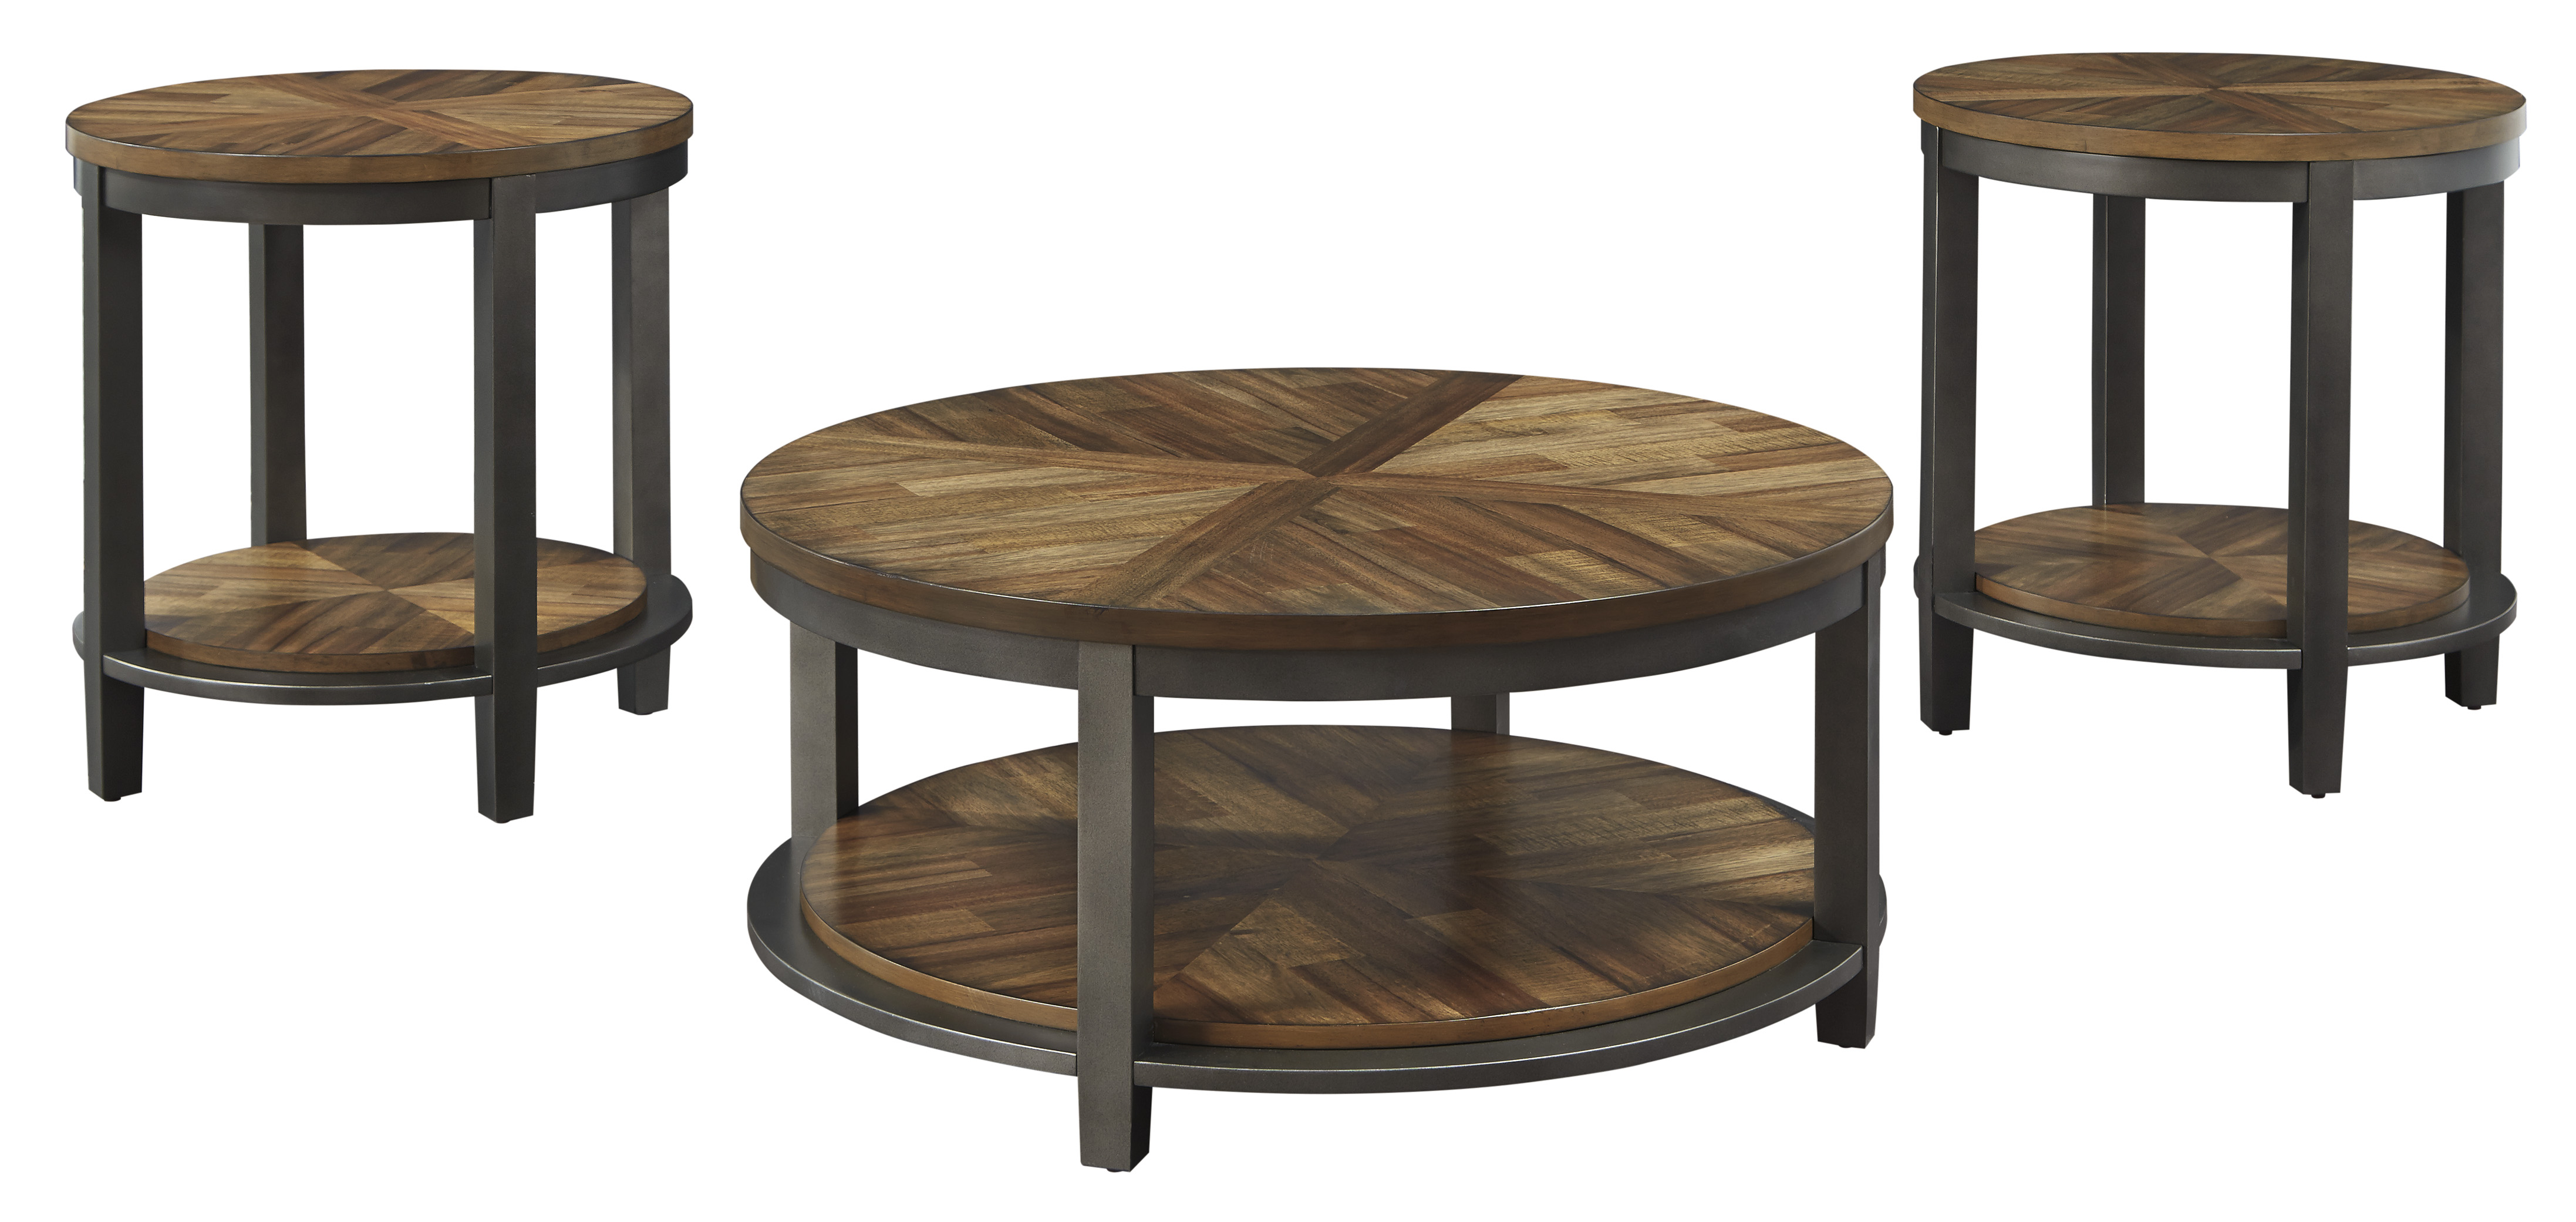 Roybeck 3 pack Table Set Signature Design by Ashley®